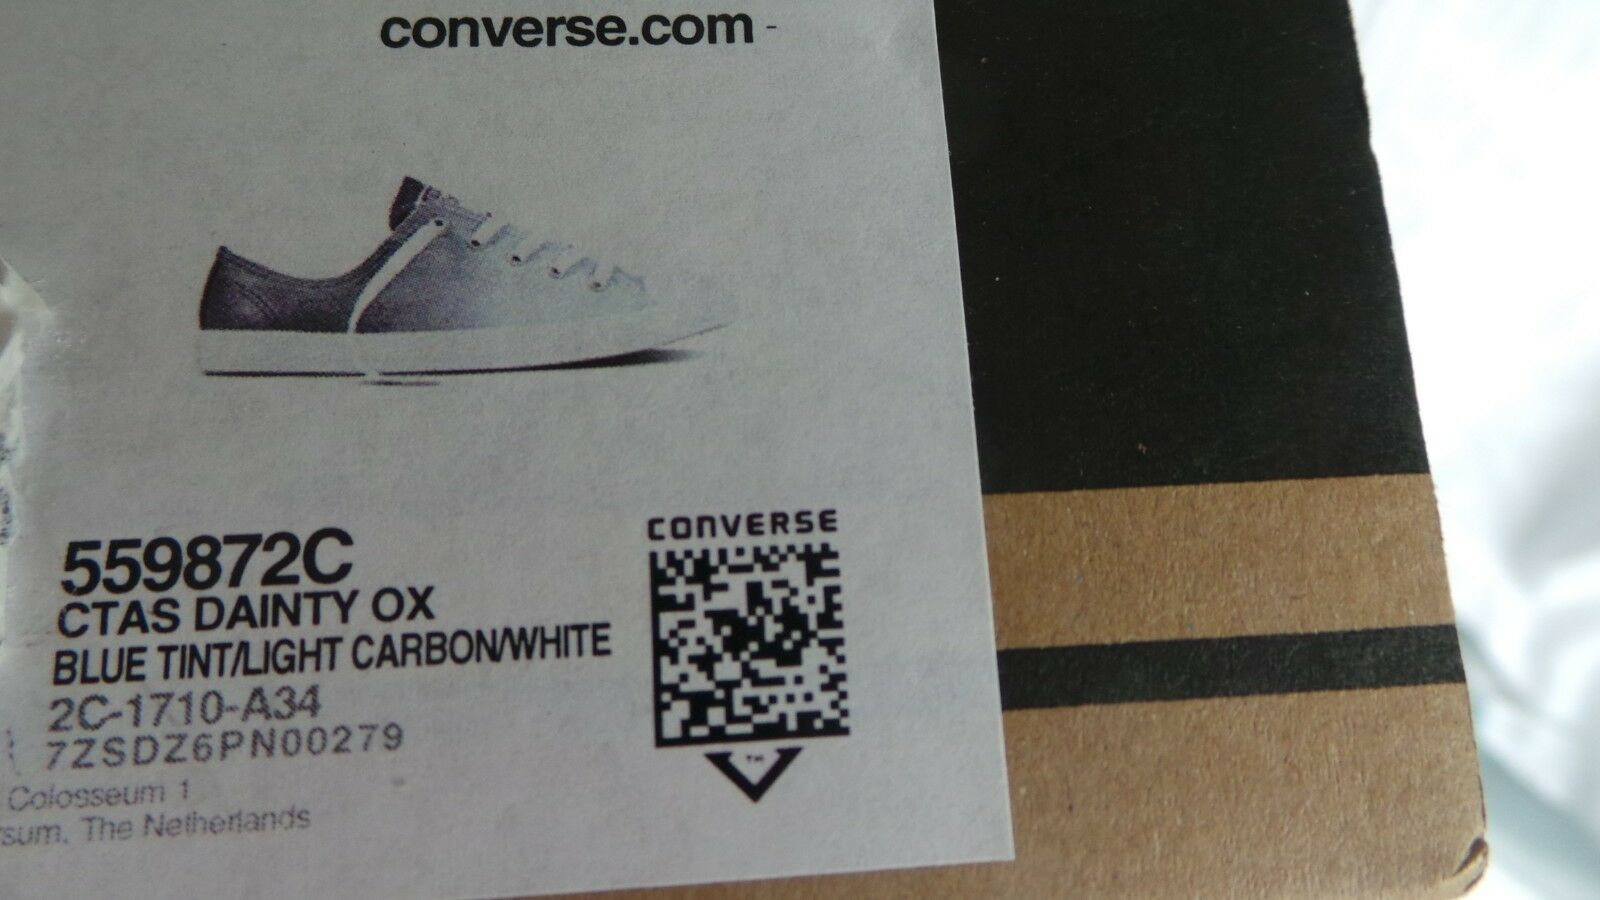 finest selection 7e359 8b2e2 ... New in in in Box Converse All Star Dainty Ox Sparkle Baskets Taille 6  Blue Tint